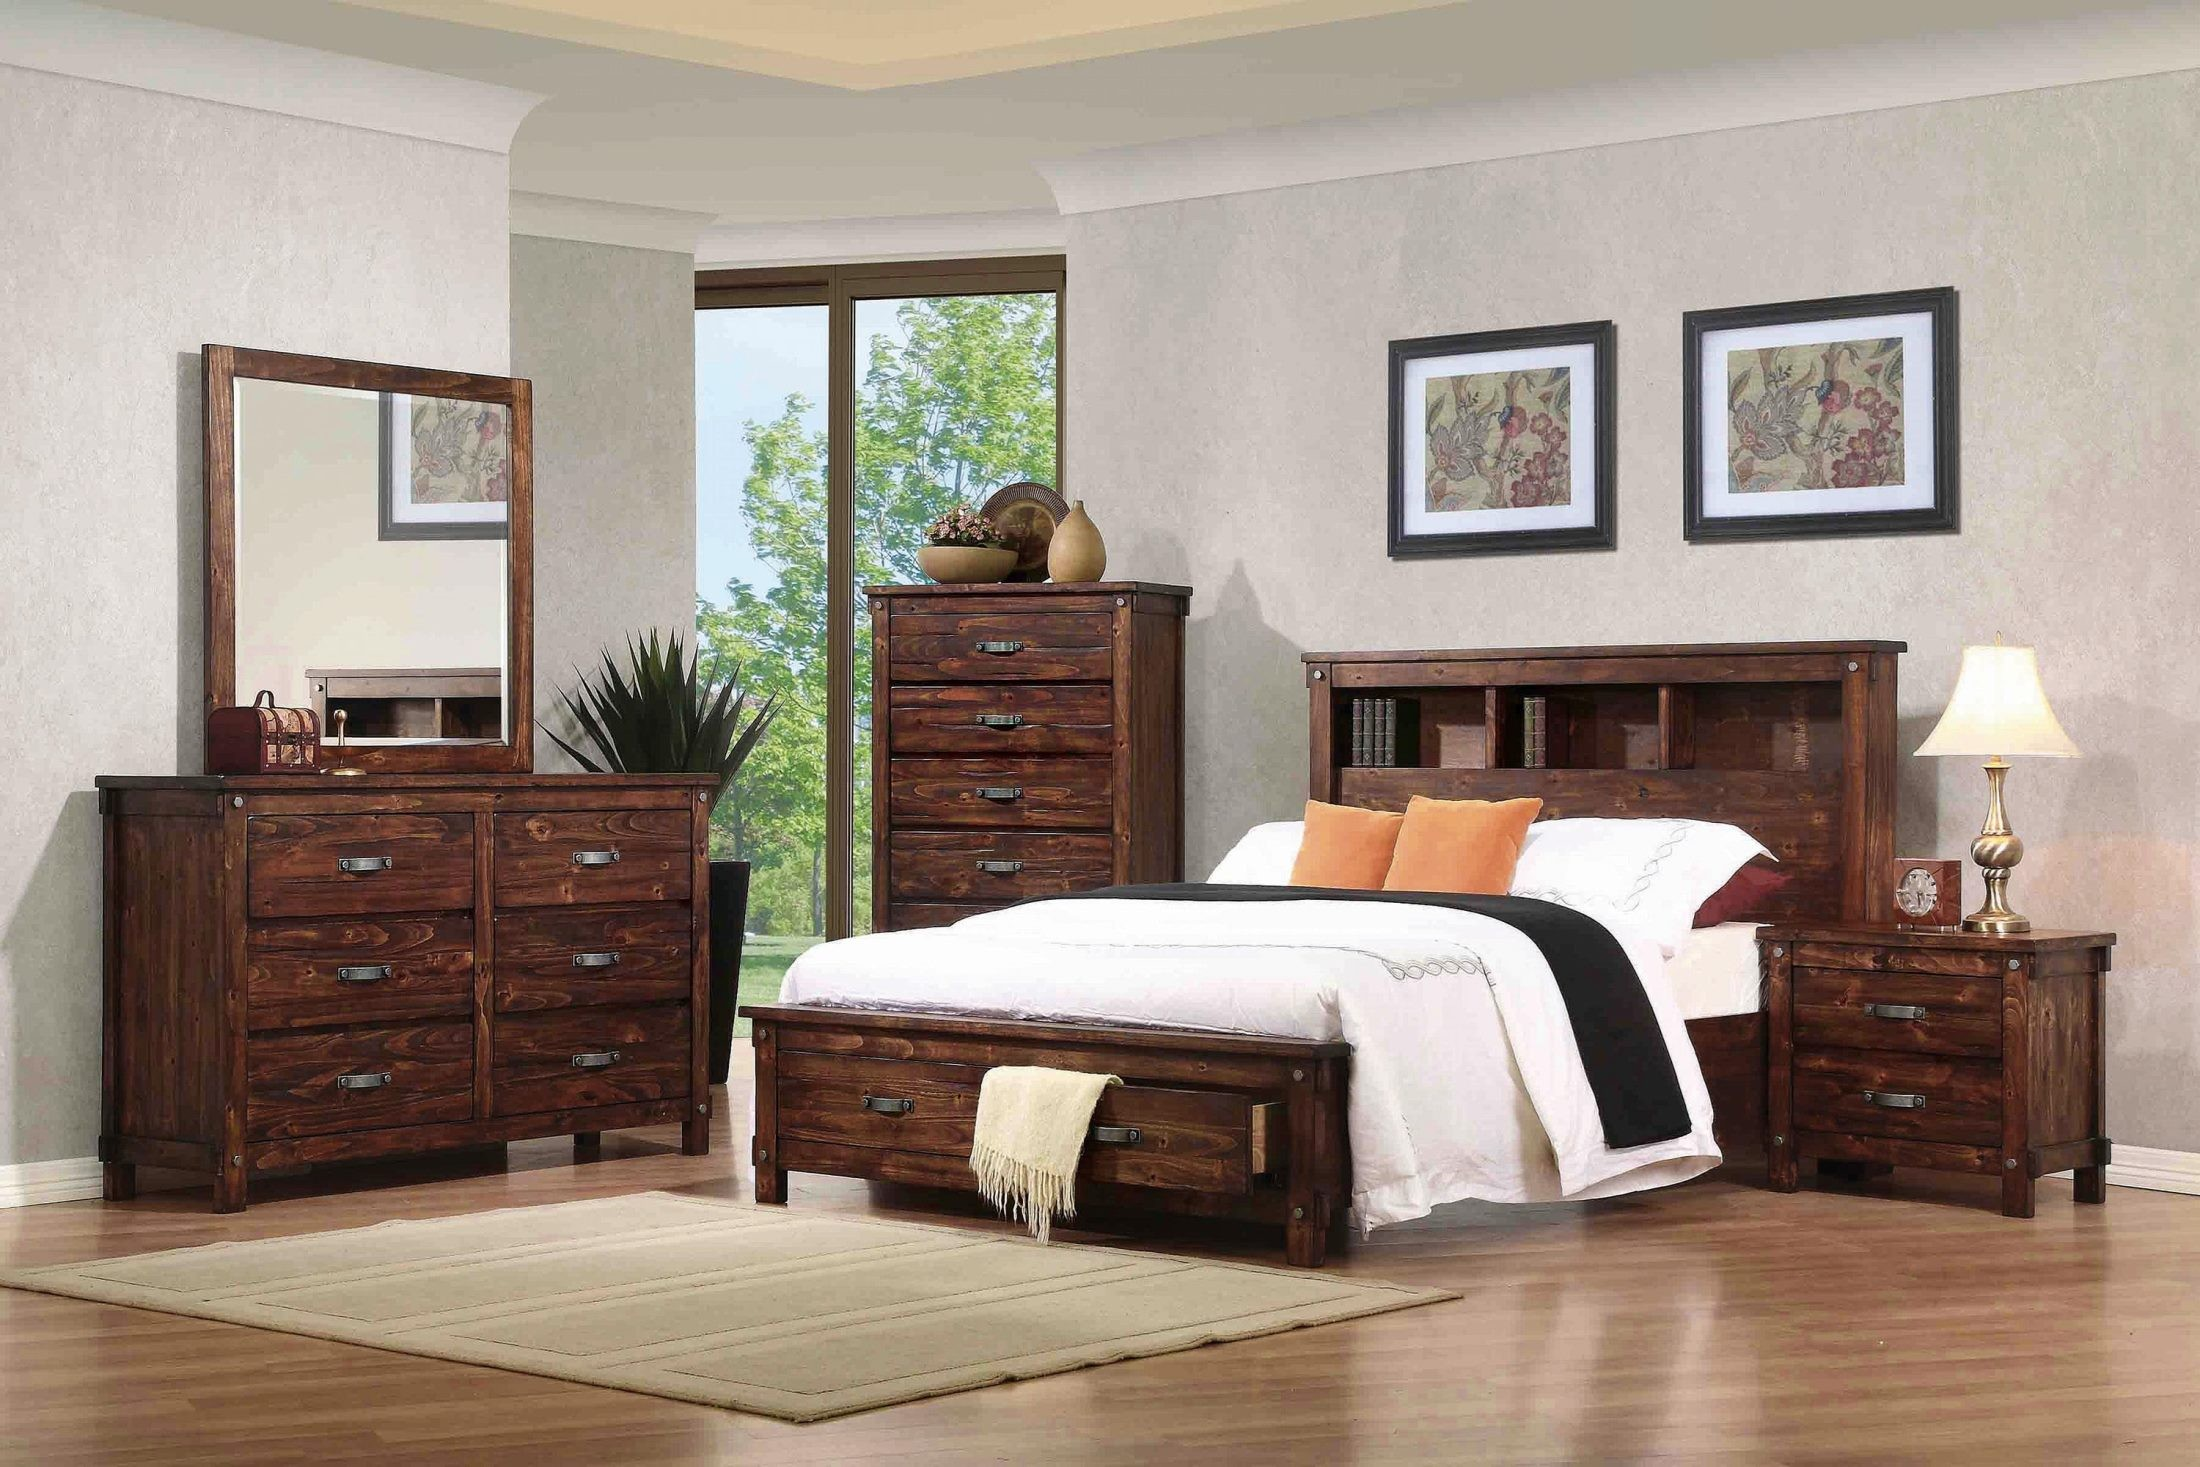 home decorators collection noble oak furnitureetc furniture amp more noble rustic oak dresser 12853